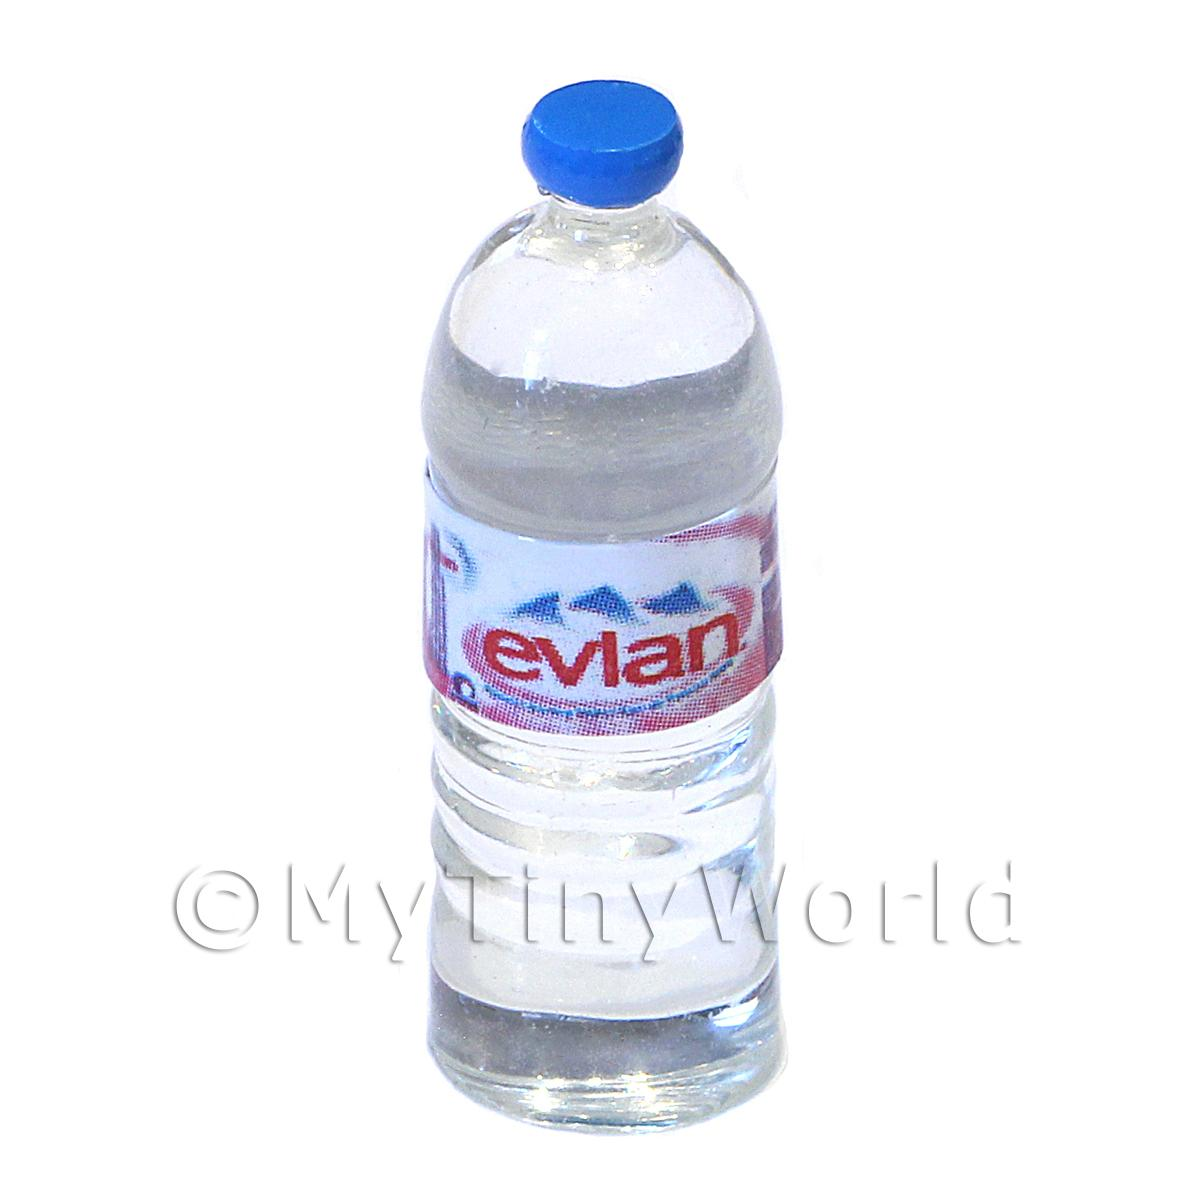 1/12 Scale Dolls House Miniatures  | Dolls House Miniature Large Evian Brand Round Water Bottle